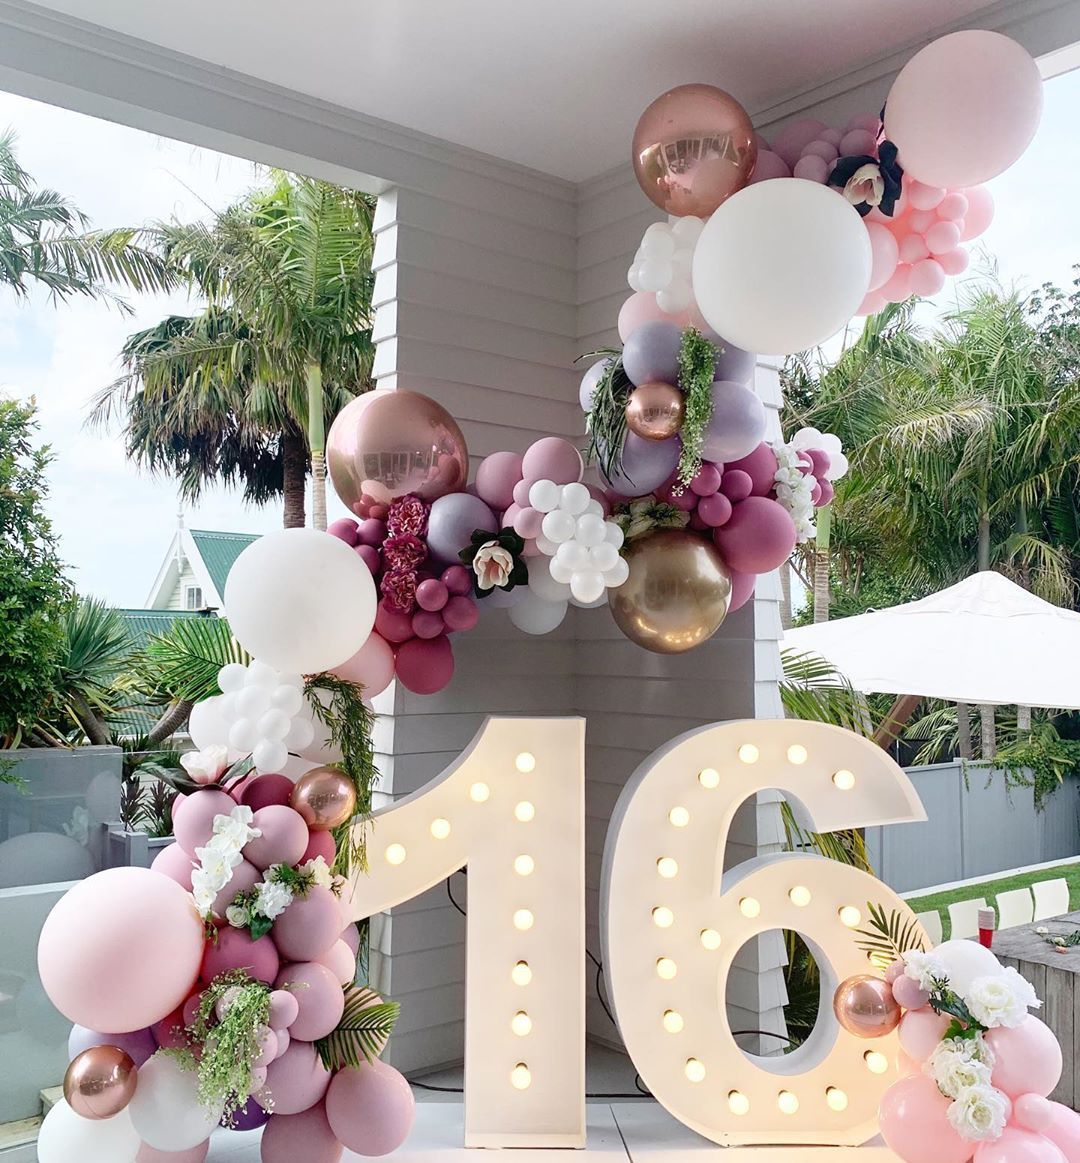 Balloonz On Instagram Luxury Romance Why Just Settle For A Standard Ballo Light Pink Birthday Party 21st Birthday Decorations Sweet 16 Party Decorations